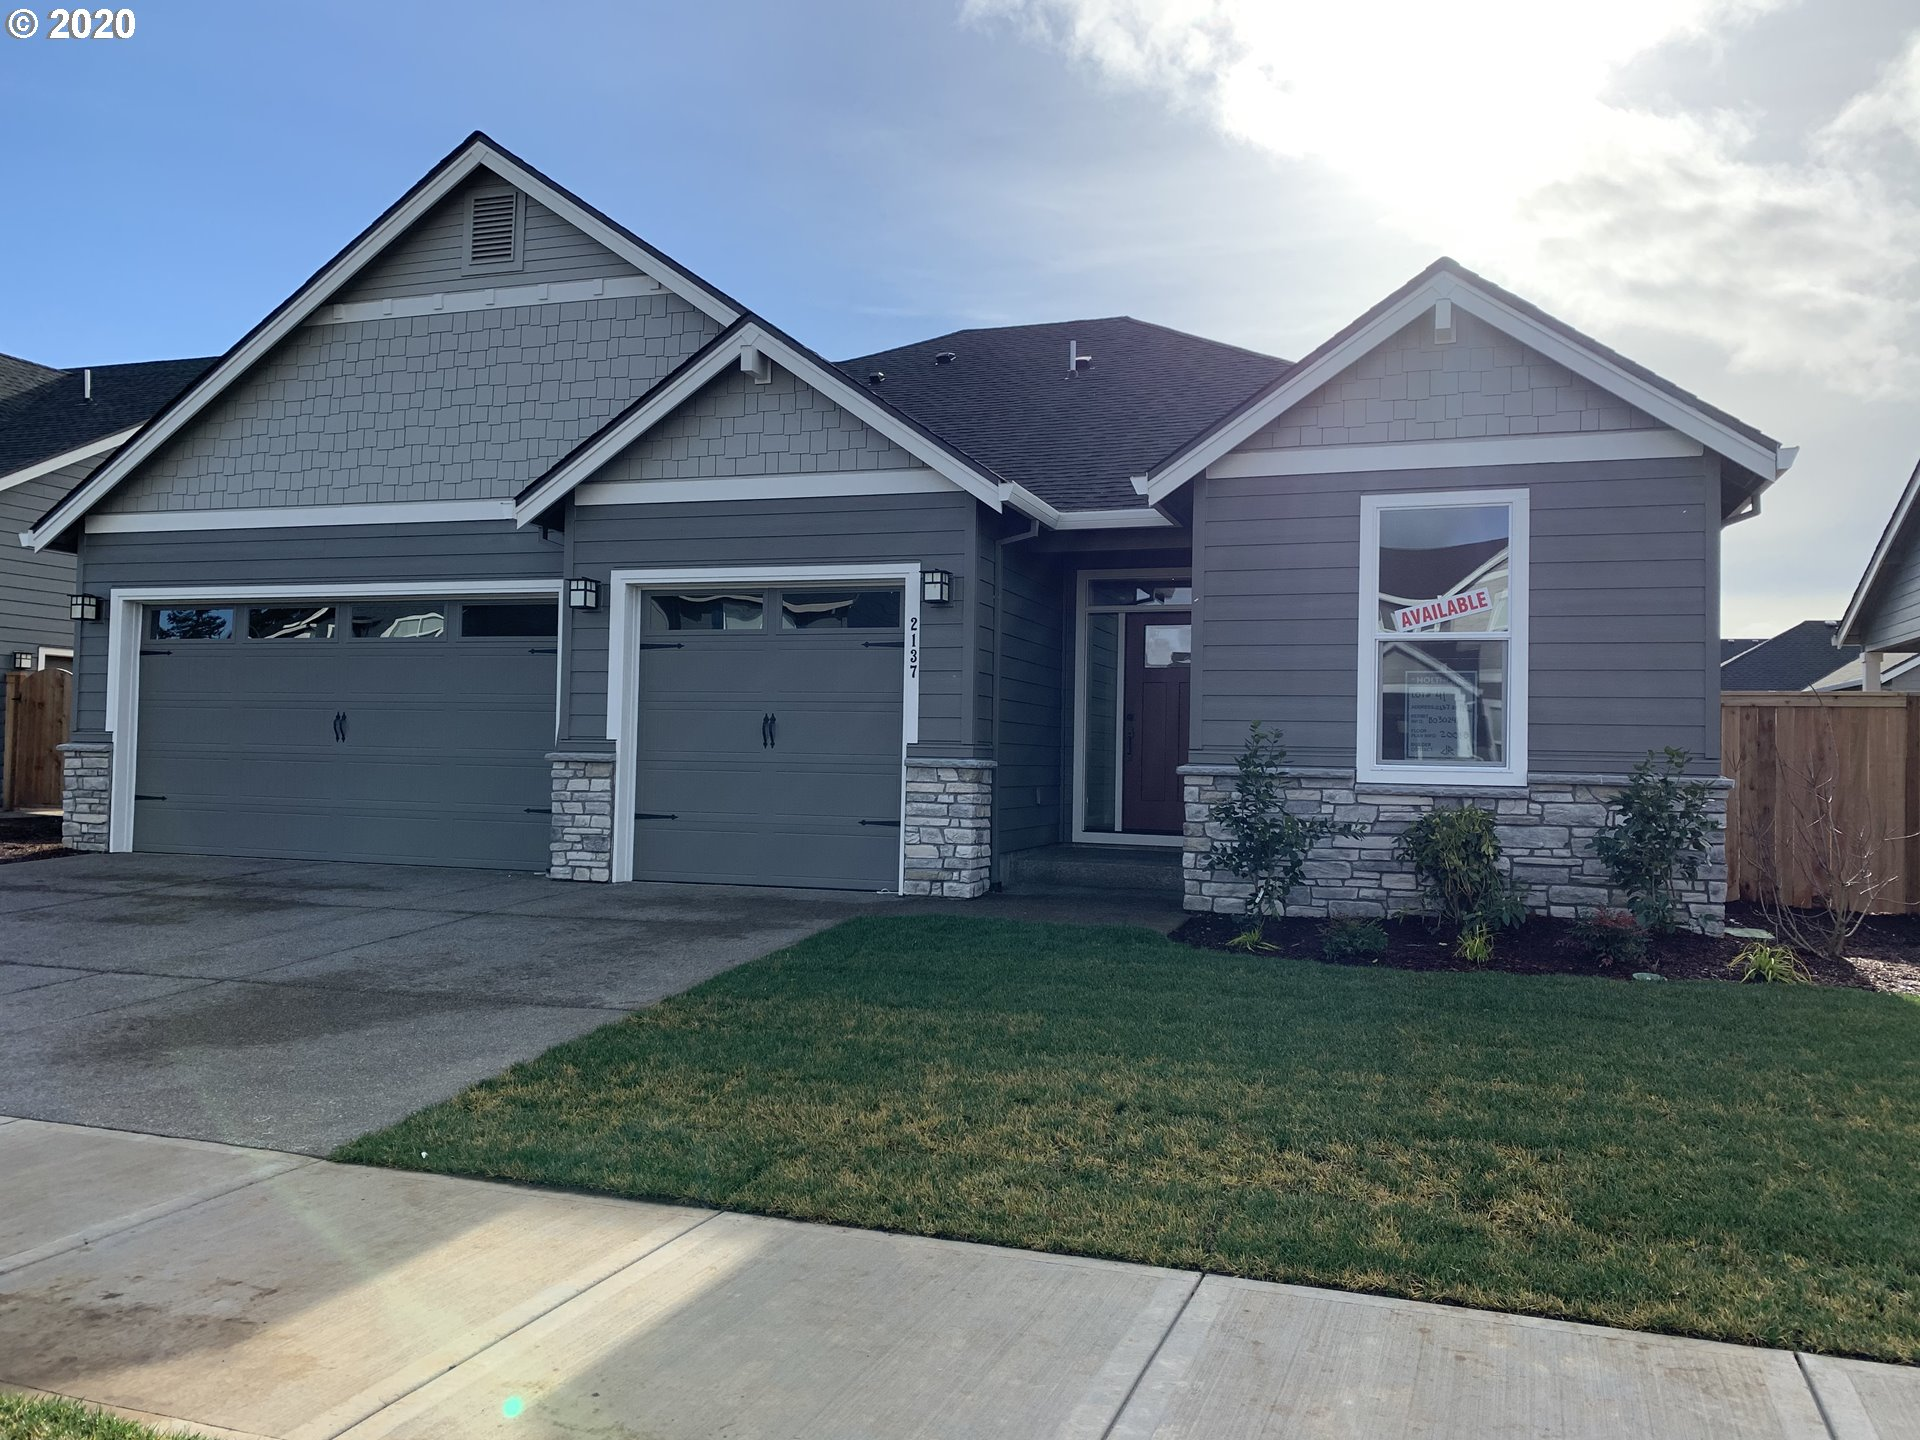 Photo of 2137 SE 11TH AVE, Lot41 Canby OR 97013